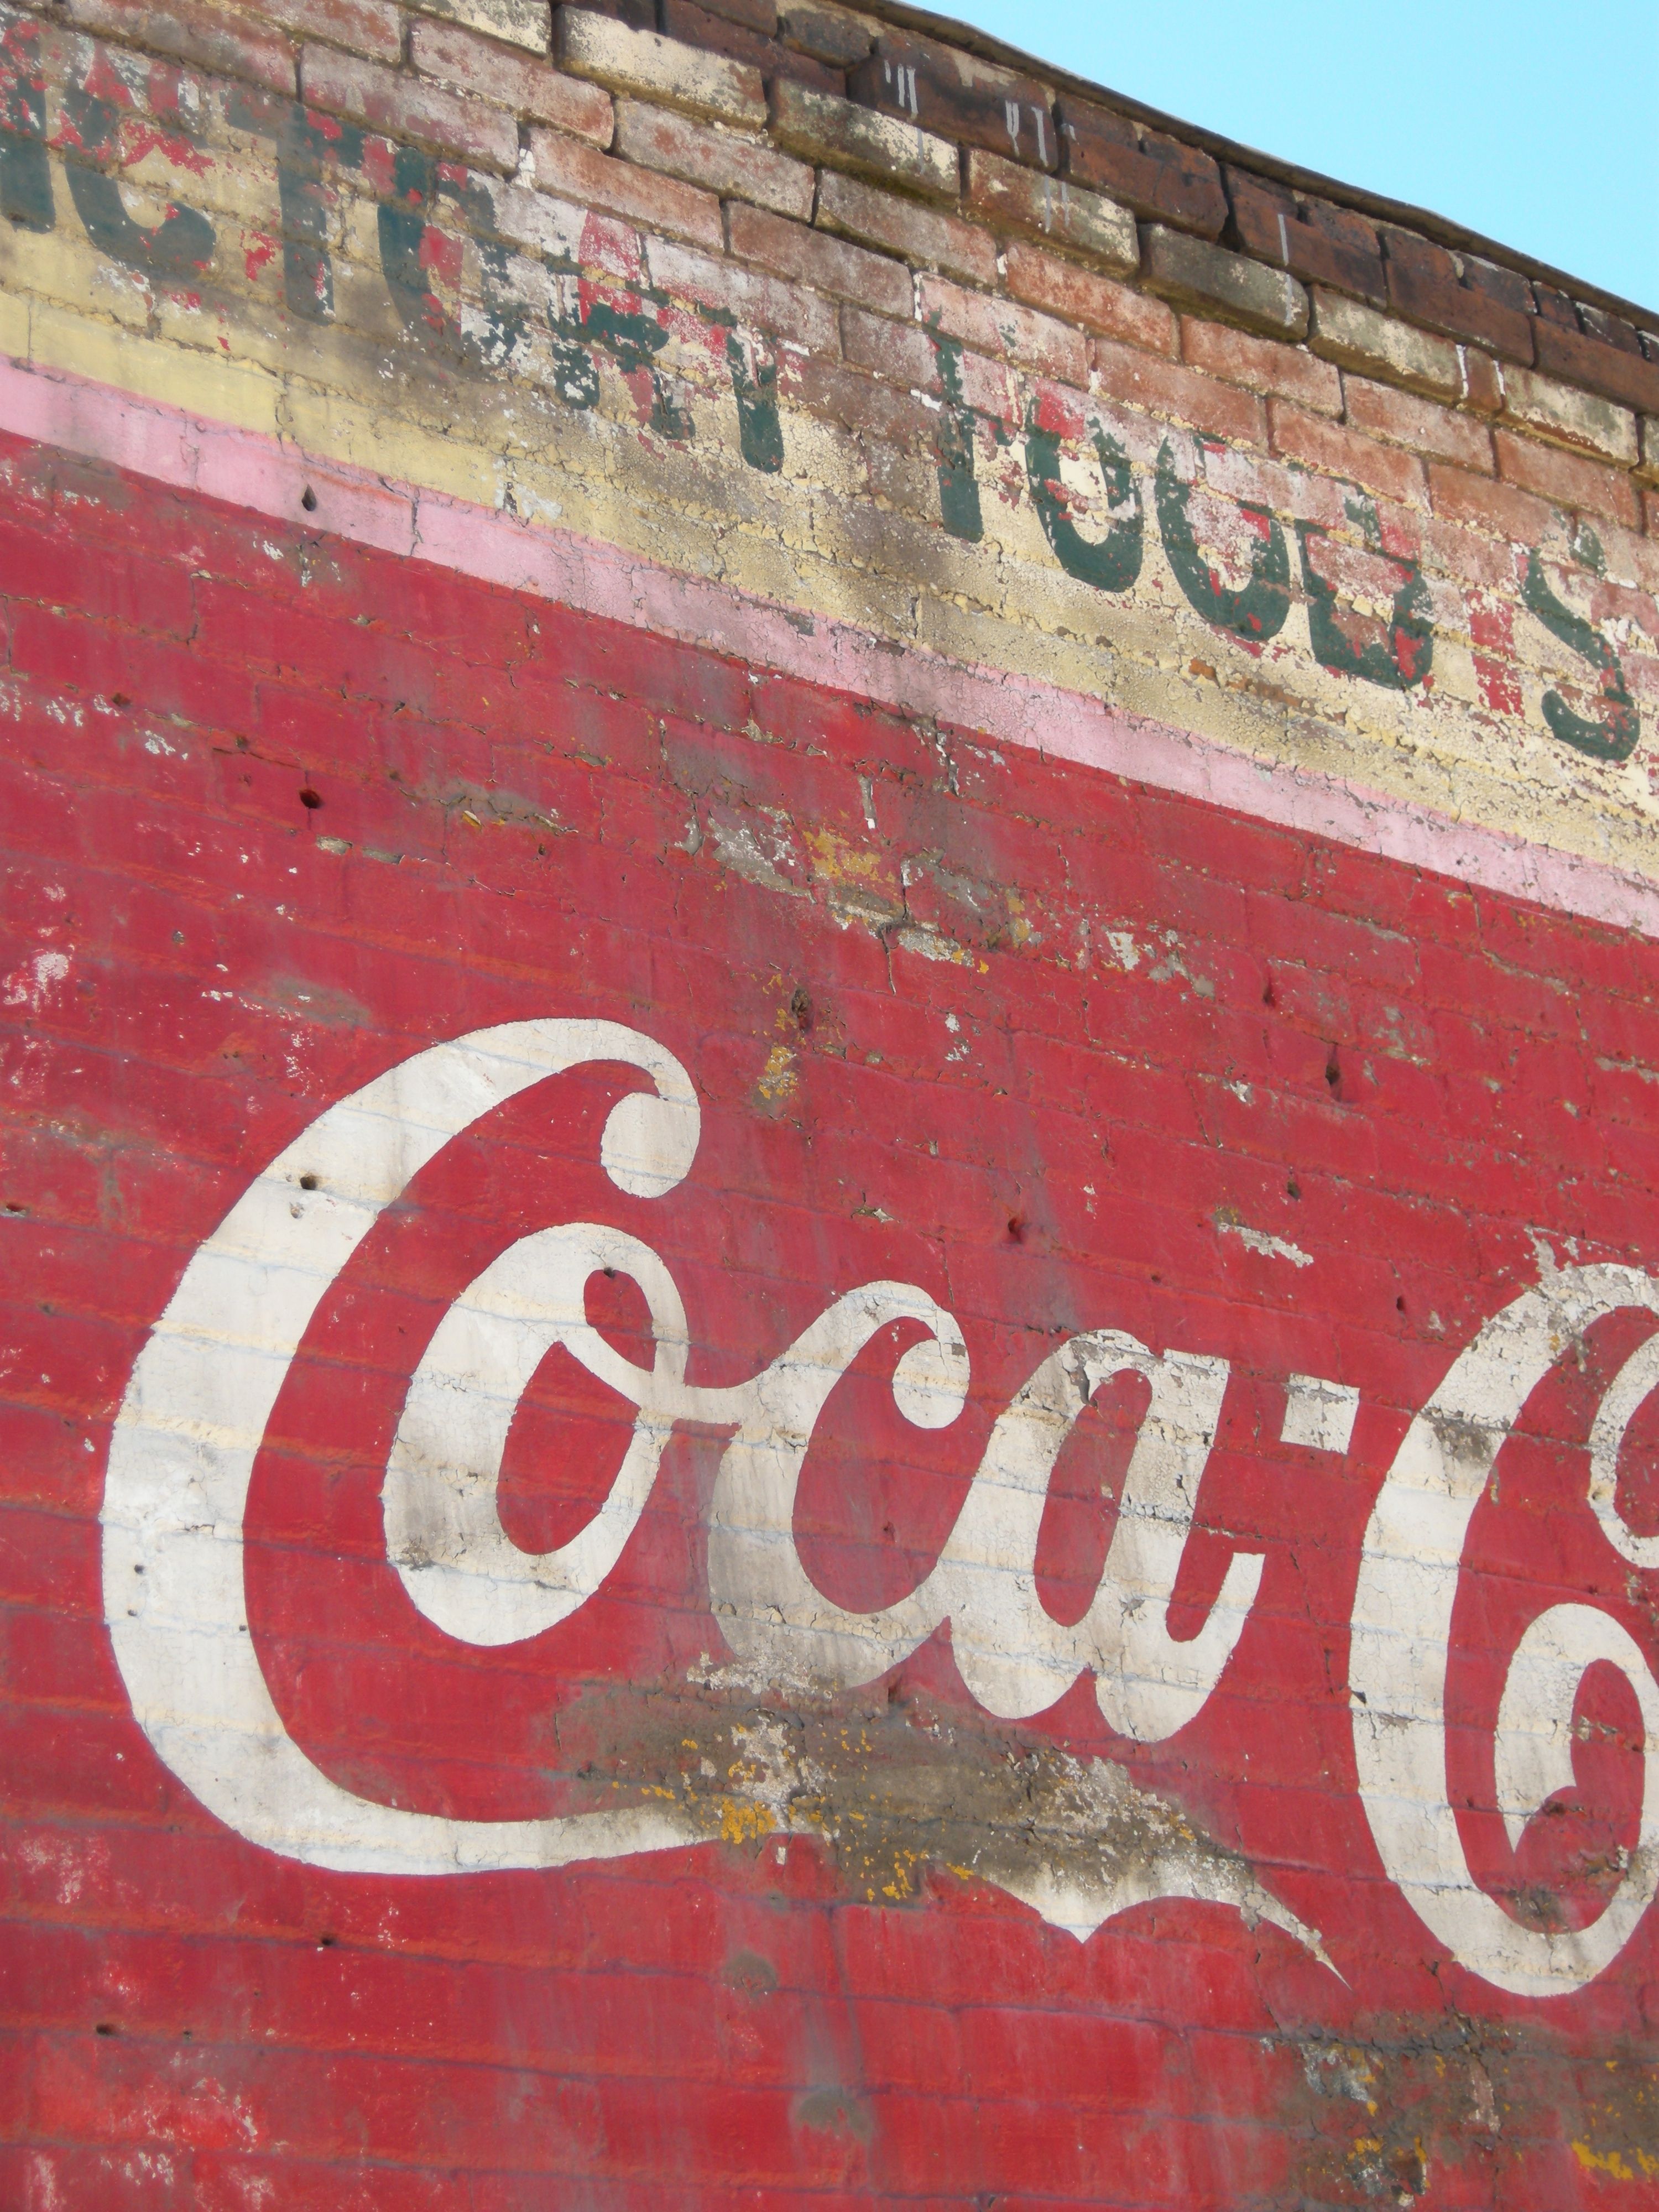 Coca-Cola-wall-mural-on-the-side-of-an-old-building-Tremont-St-Denver-CO-Photo-by-wallpaper-wp5603958